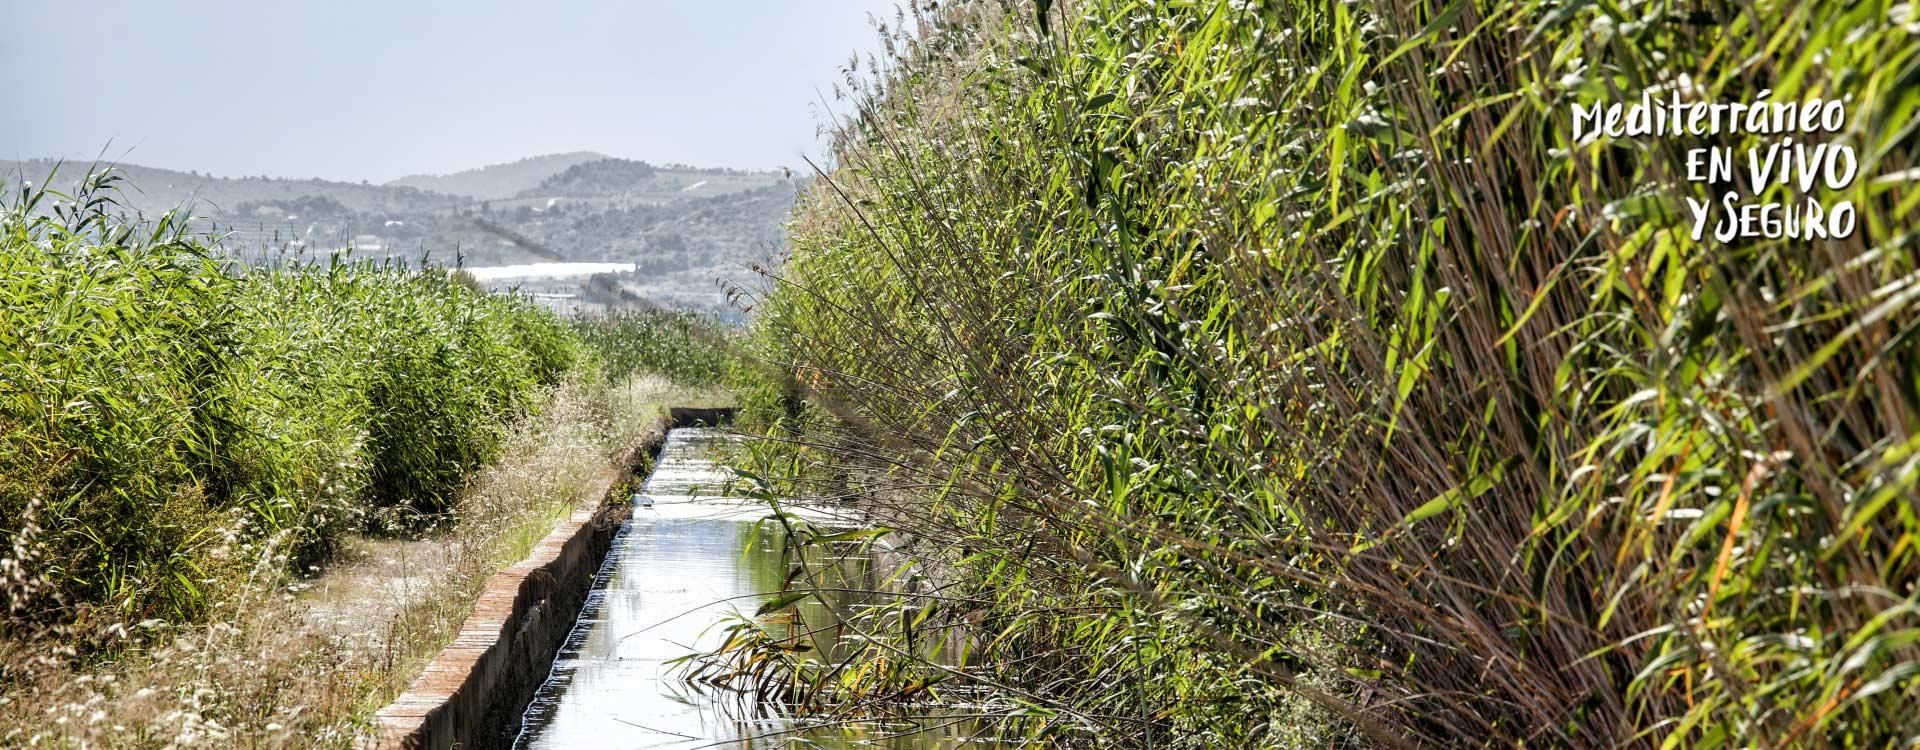 Image of La marjal dels moros, a wetland located in the south of the municipality of Sagunto